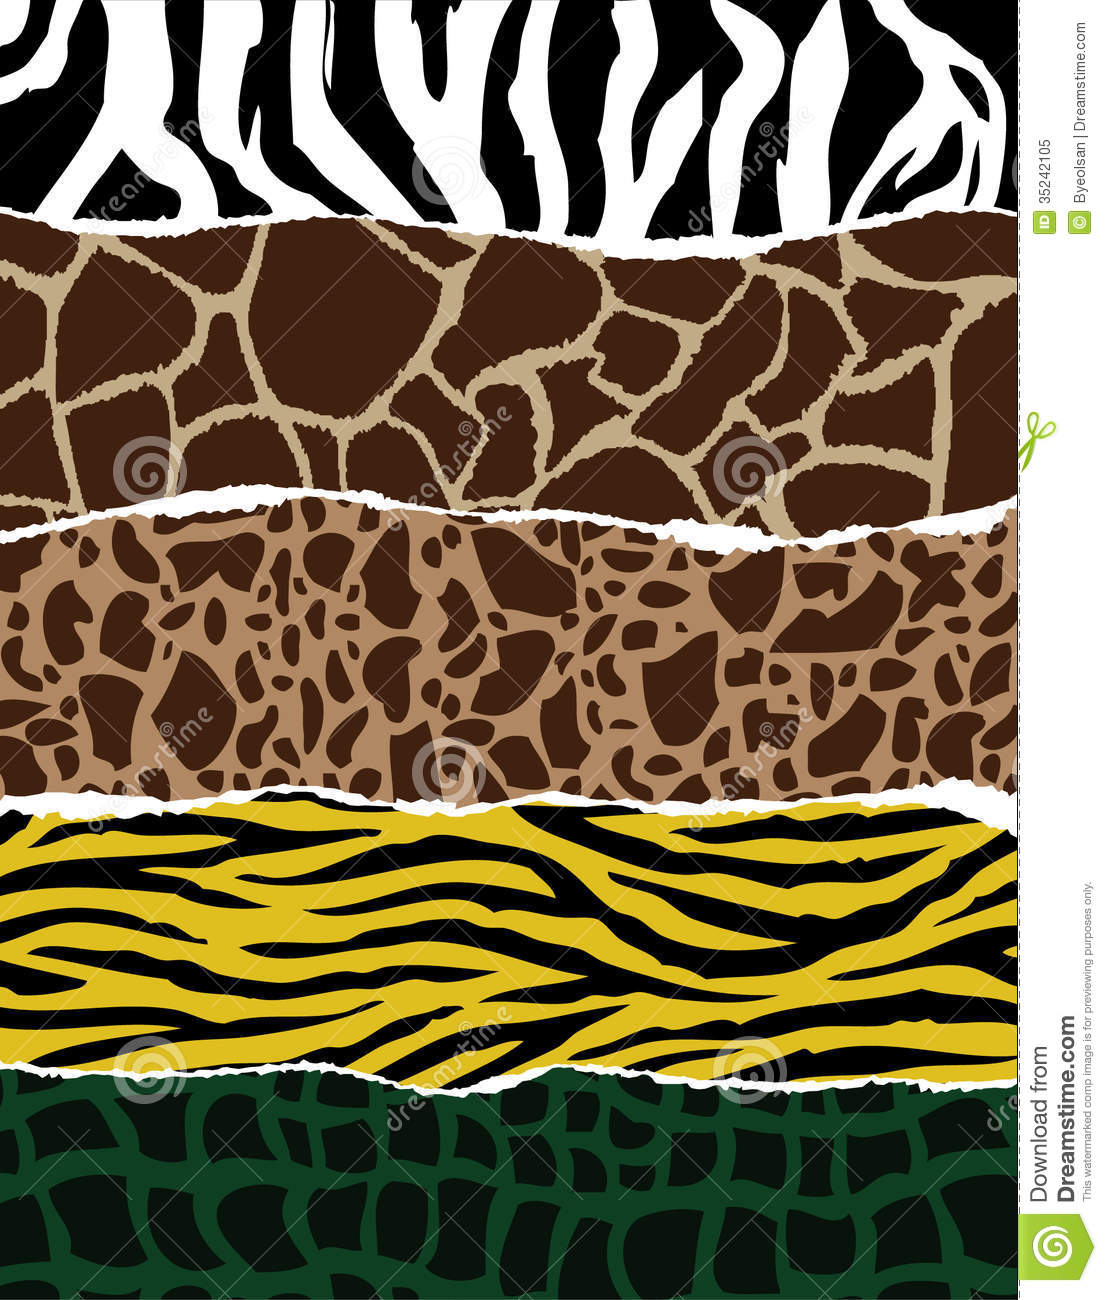 Black Animal Print Wallpaper Collection Of Animal Patterns Stock Vector Image 35242105